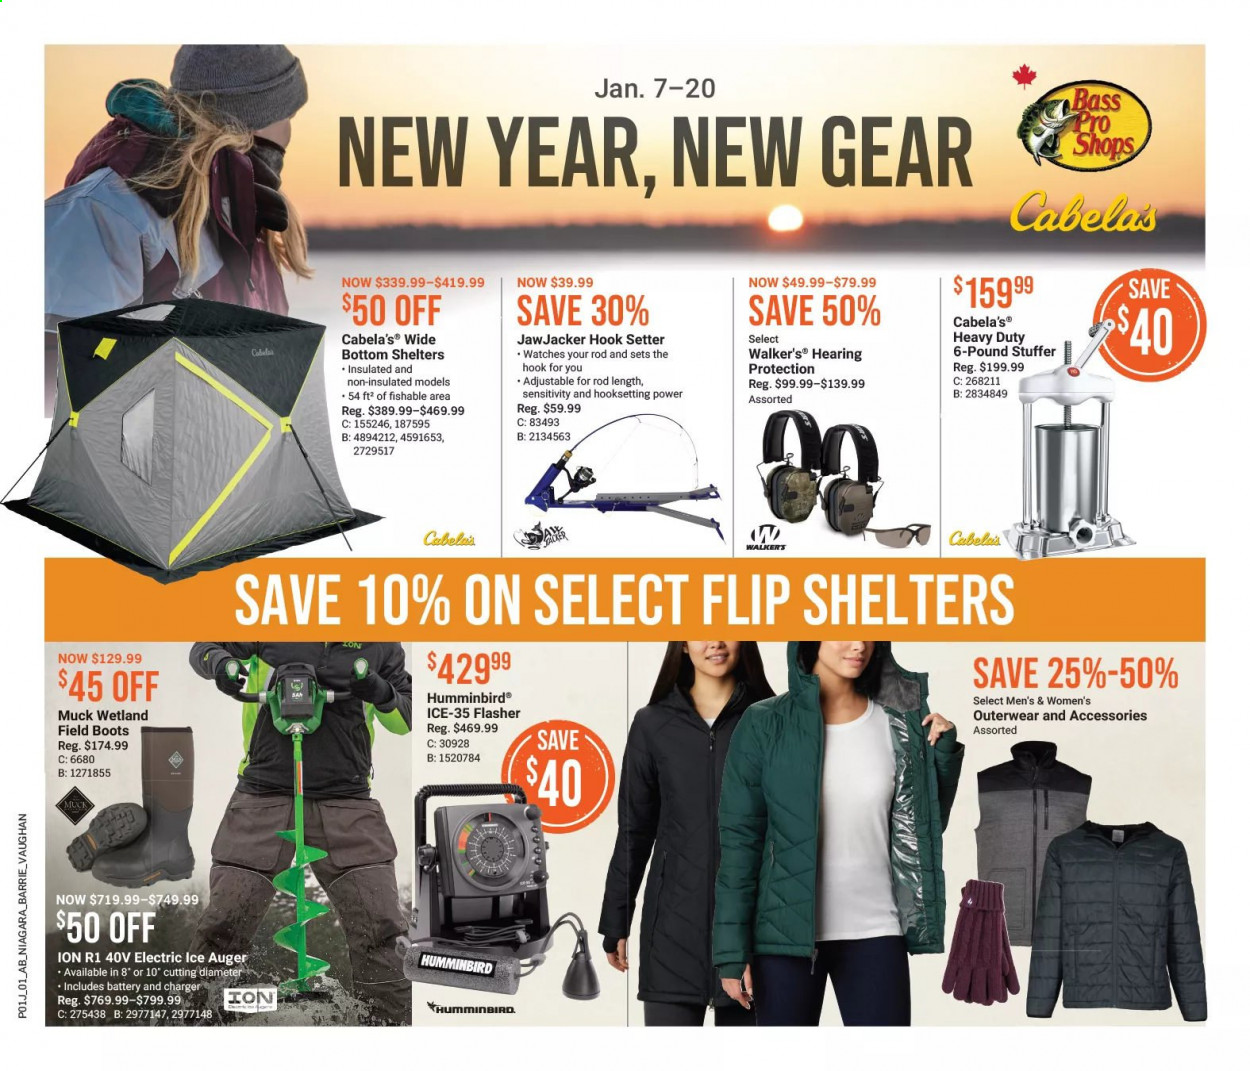 Bass Pro Shops Flyer - January 07, 2021 - January 20, 2021 - Sales products - boots, watch, hook, charger, ice auger. Page 1.